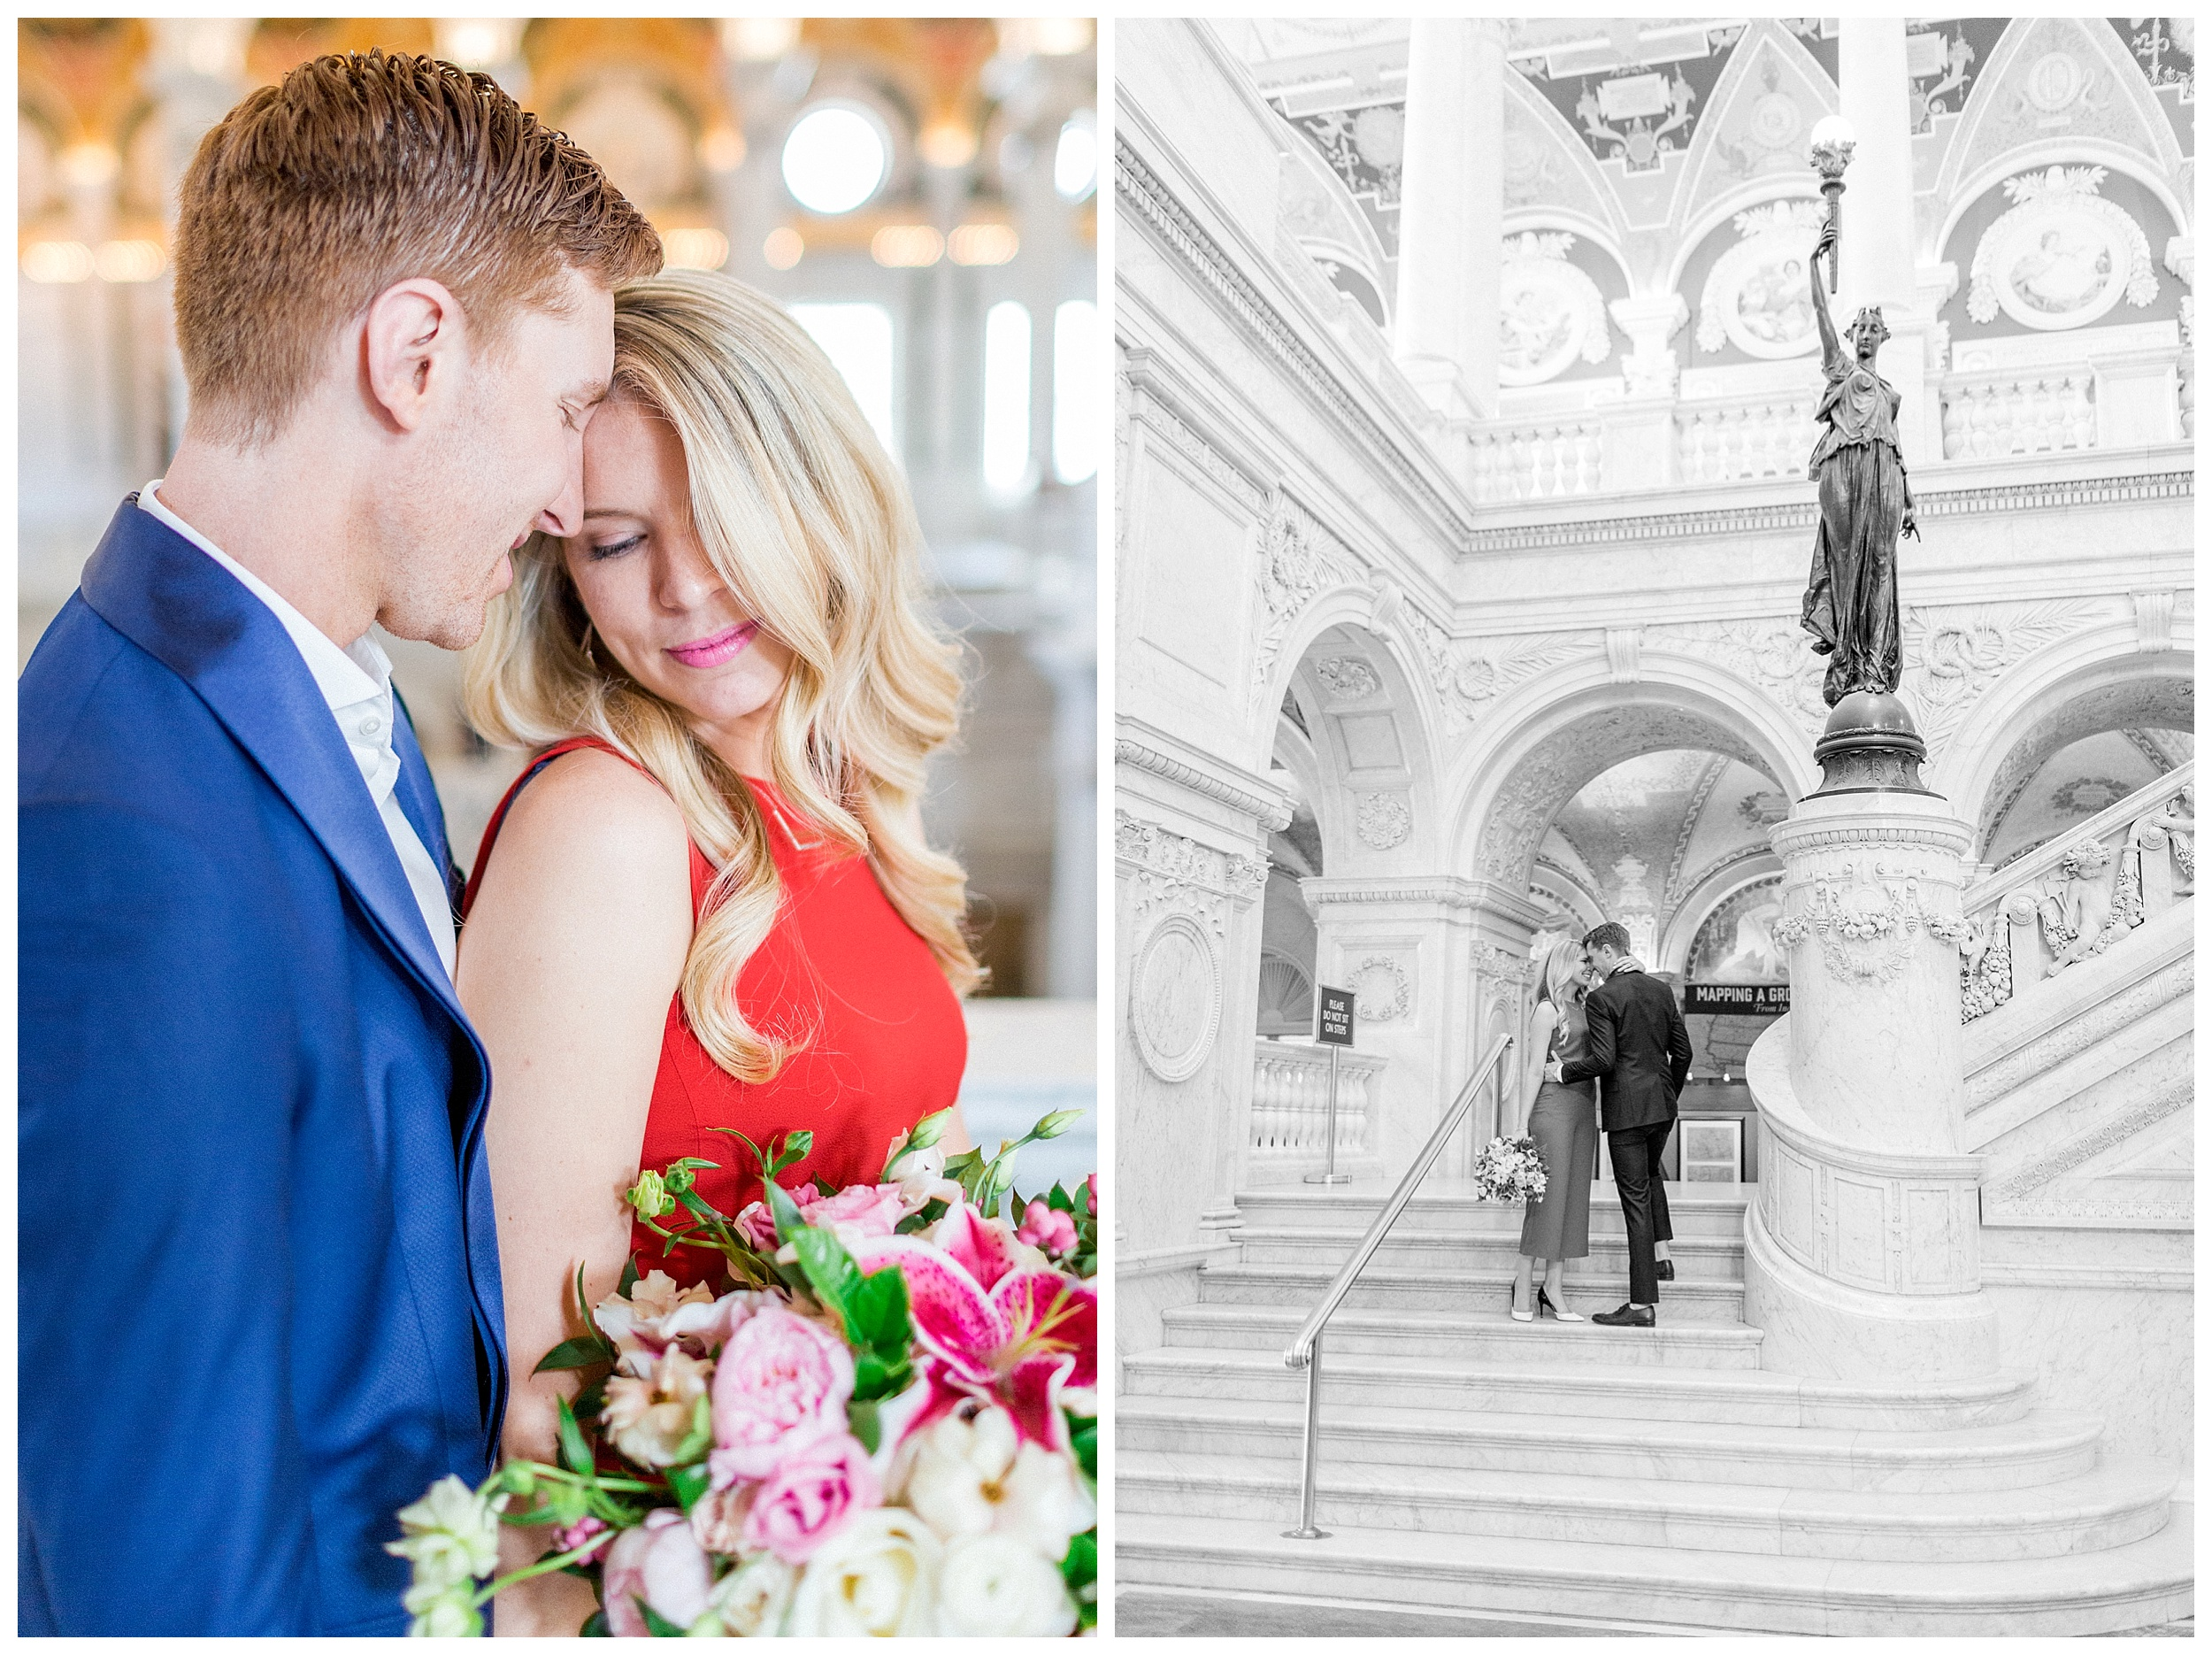 District of Columbia Elopement | Library of Congress Engagement Session Washington DC_0008.jpg